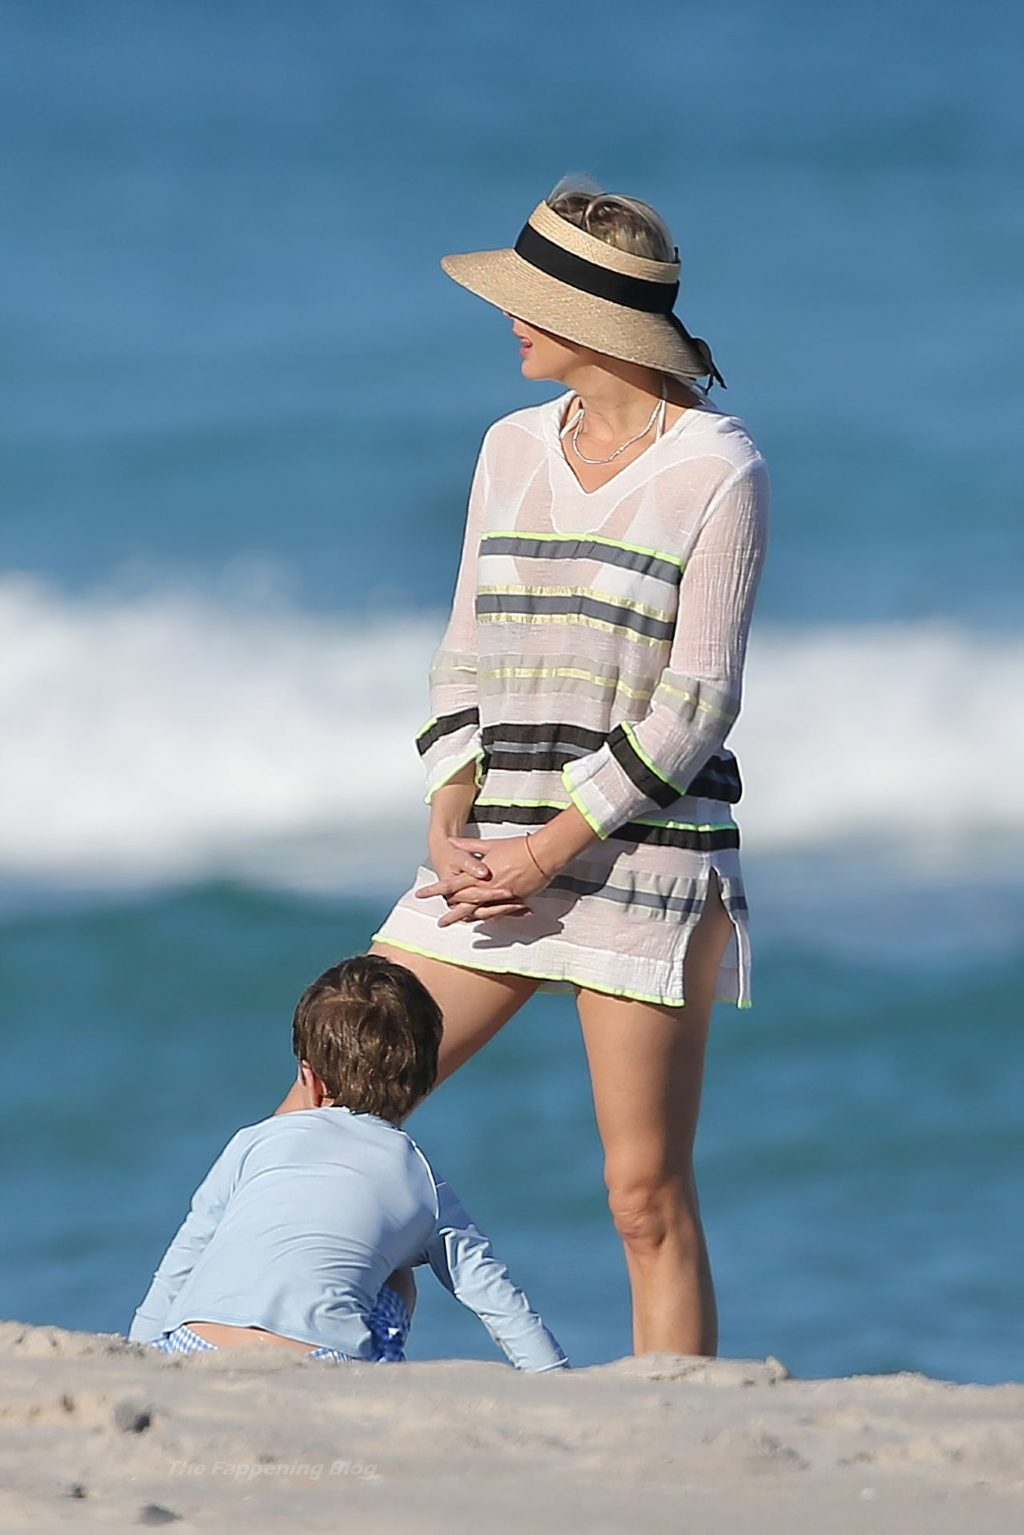 Ivanka Trump Wears a Bikini Under a Short Cover-up as She Relax on the Beach in Miami (65 Photos)